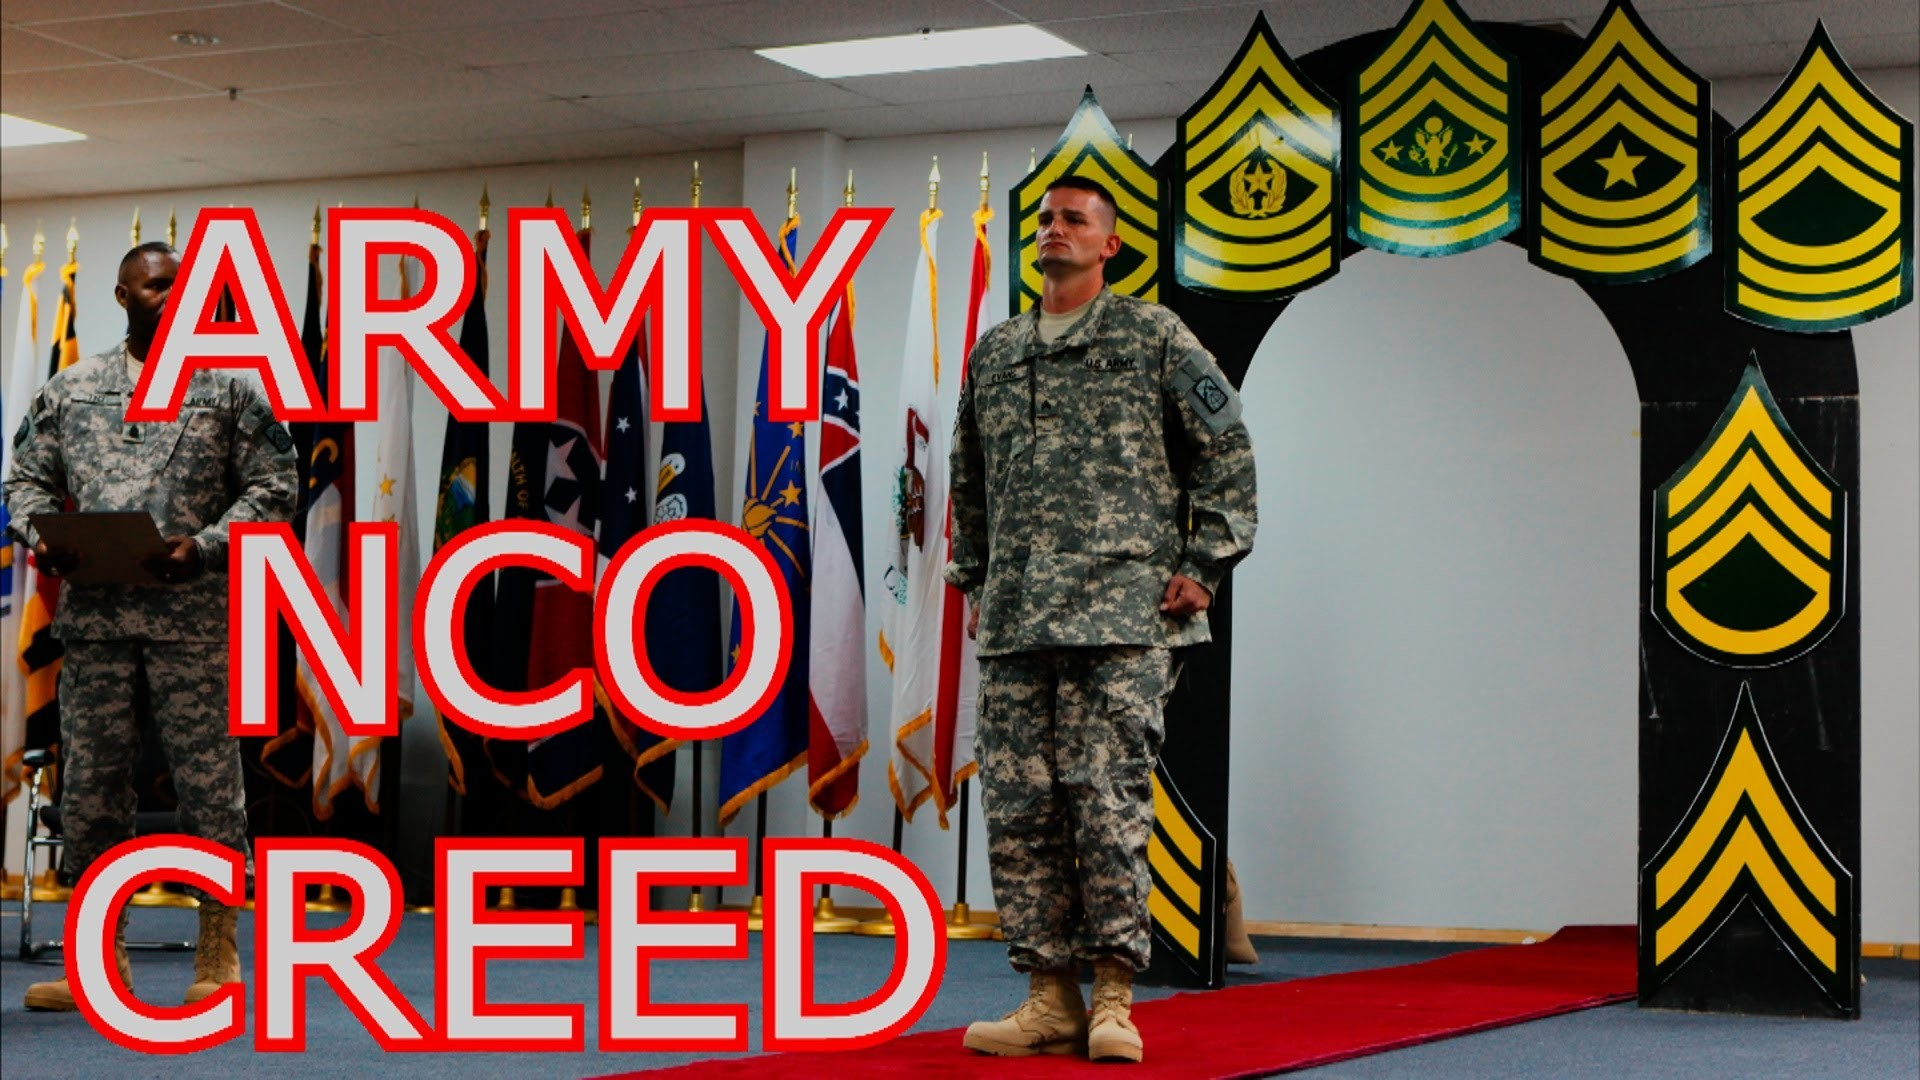 Life of a U.S. Army Soldier – THE NCO CREED   CREED OF THE NONCOMMISIONED  OFFICER   US ARMY